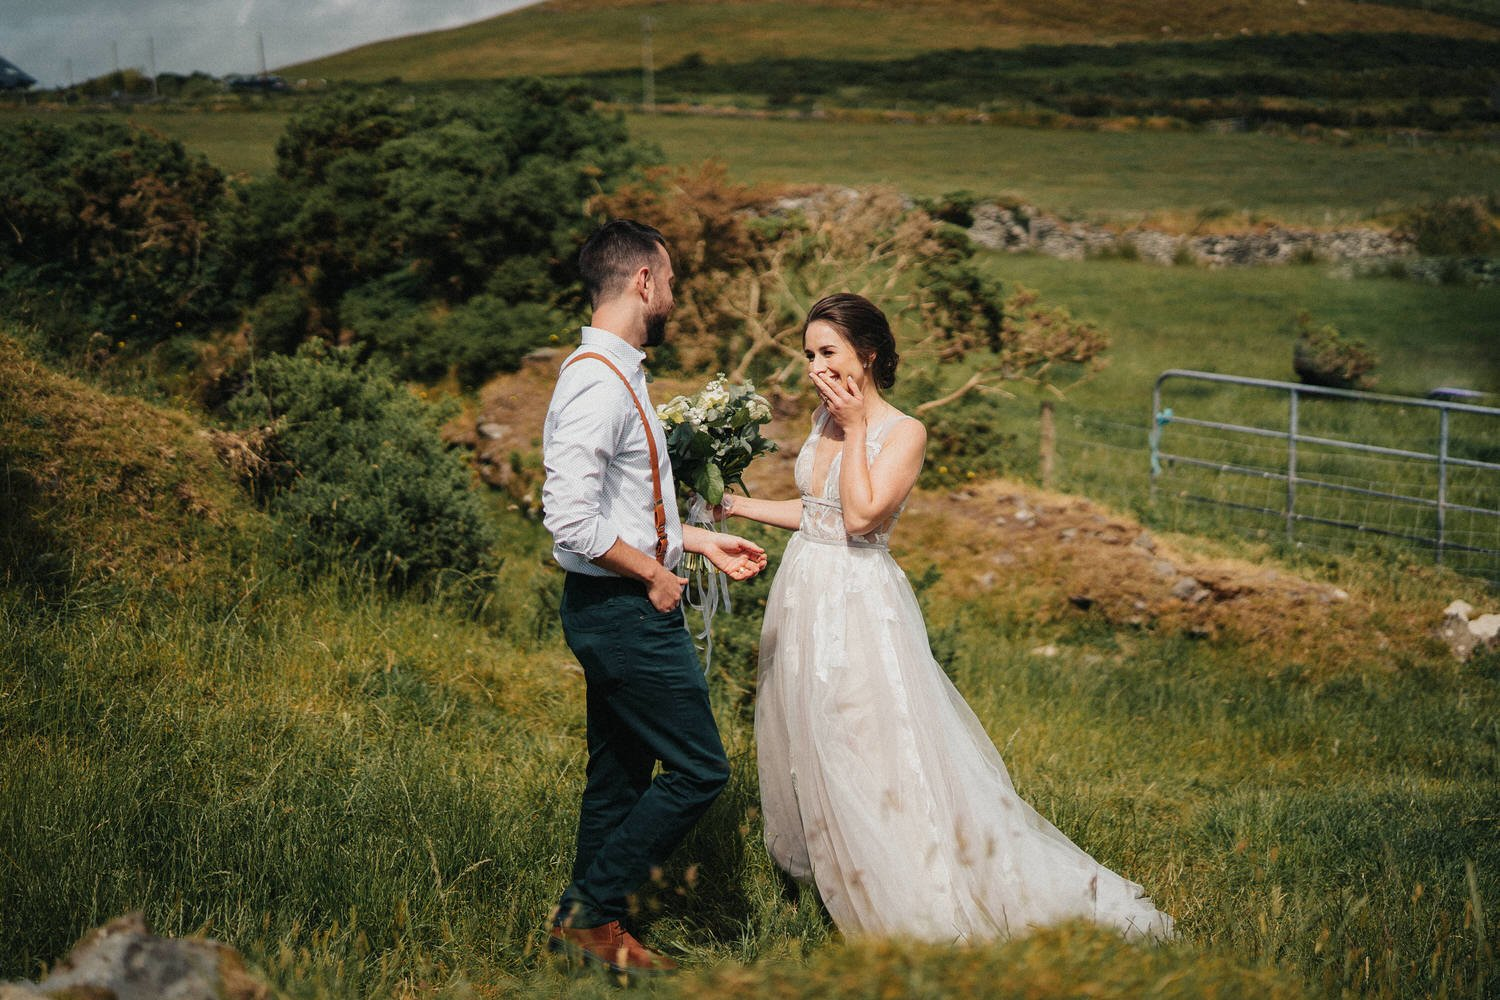 Elope to Ireland - perfect elopement wedding 5